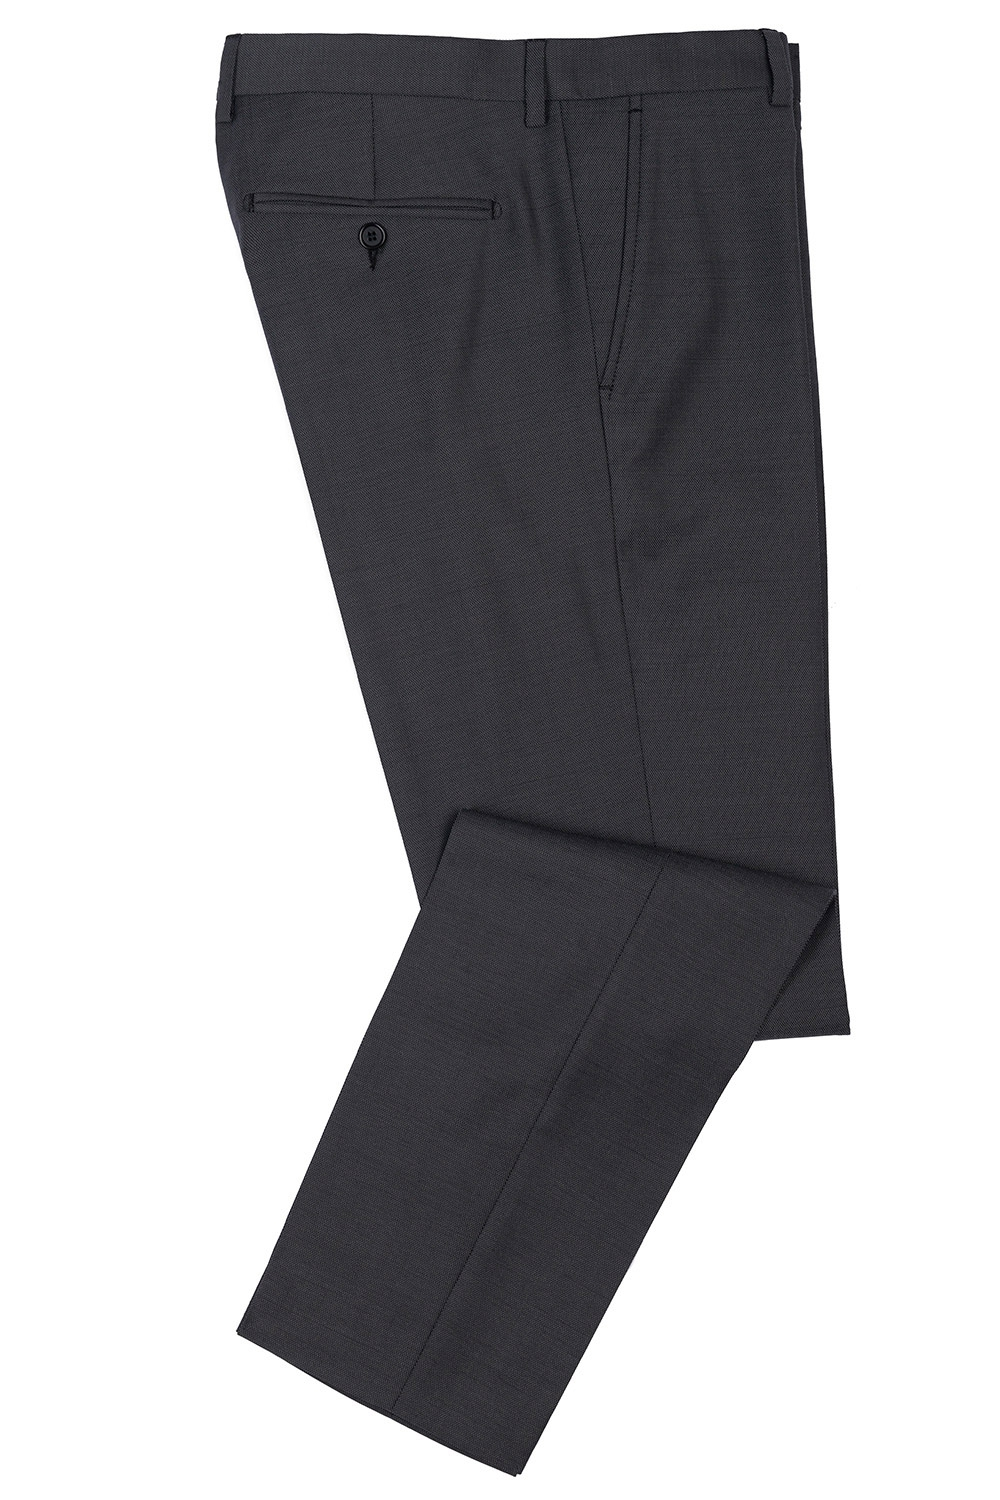 Slim body Grey Plain Trouser 0